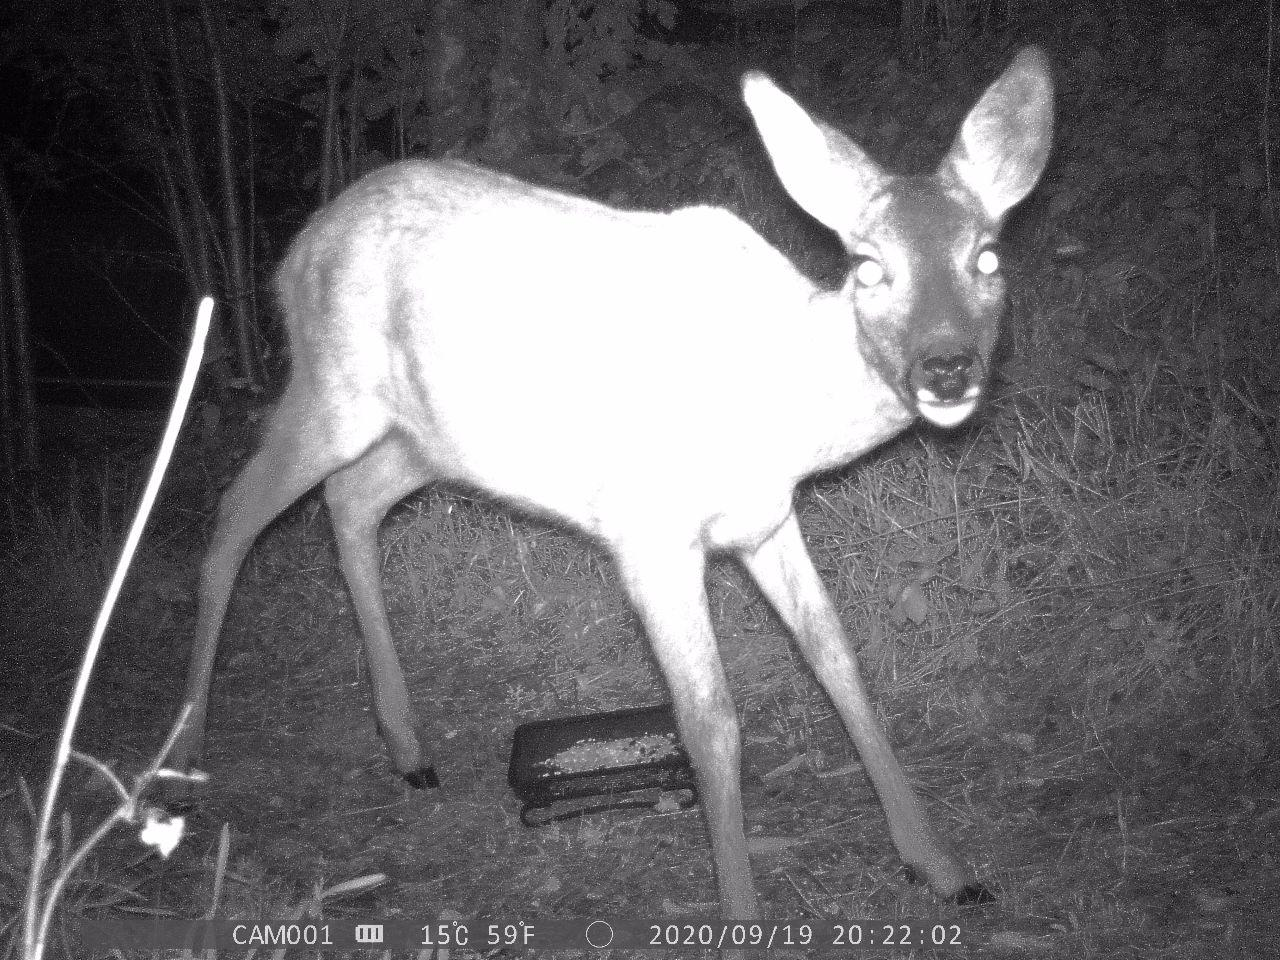 deer startled by the camera, its fur is lit up by the cameras light